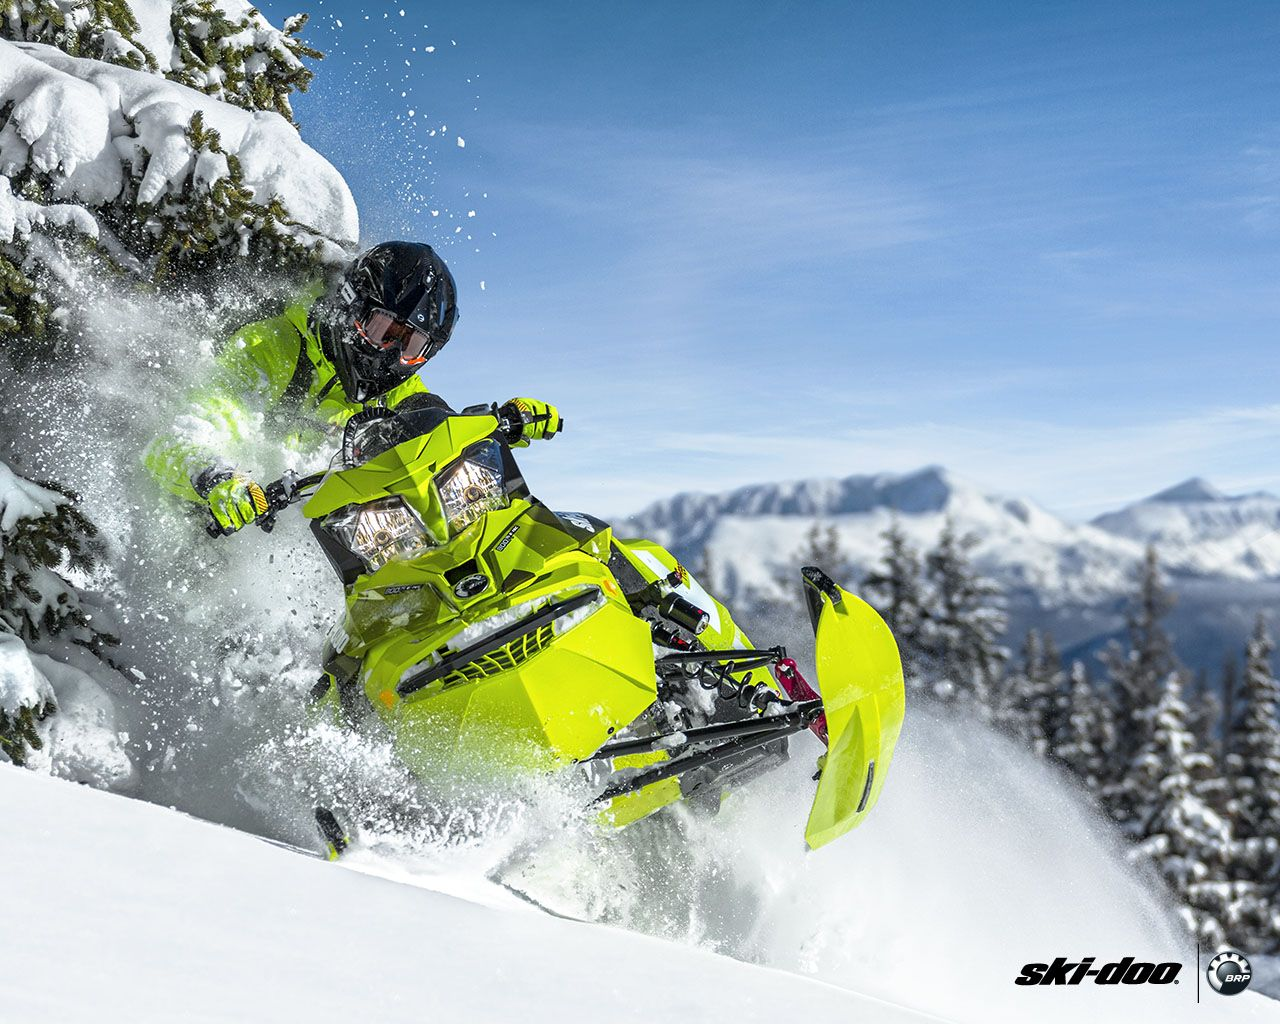 2015 Ski-Doo Freeride 154 | Action